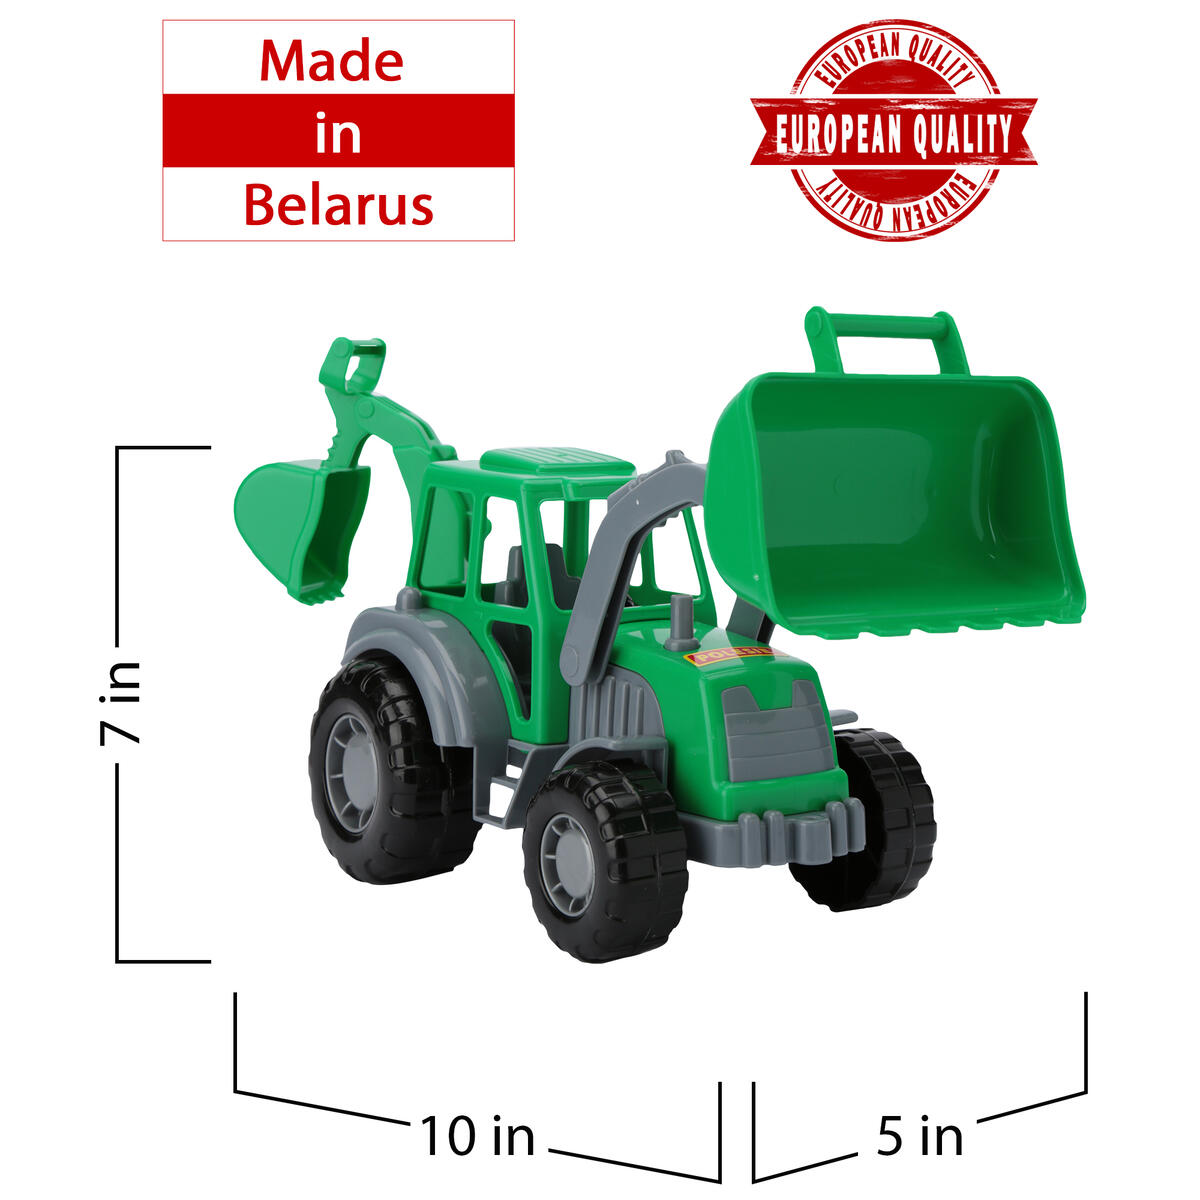 Excavator Toy for Boys - Backhoe Toy for Toddlers - Sand Digger for Kids by Polesie - Red